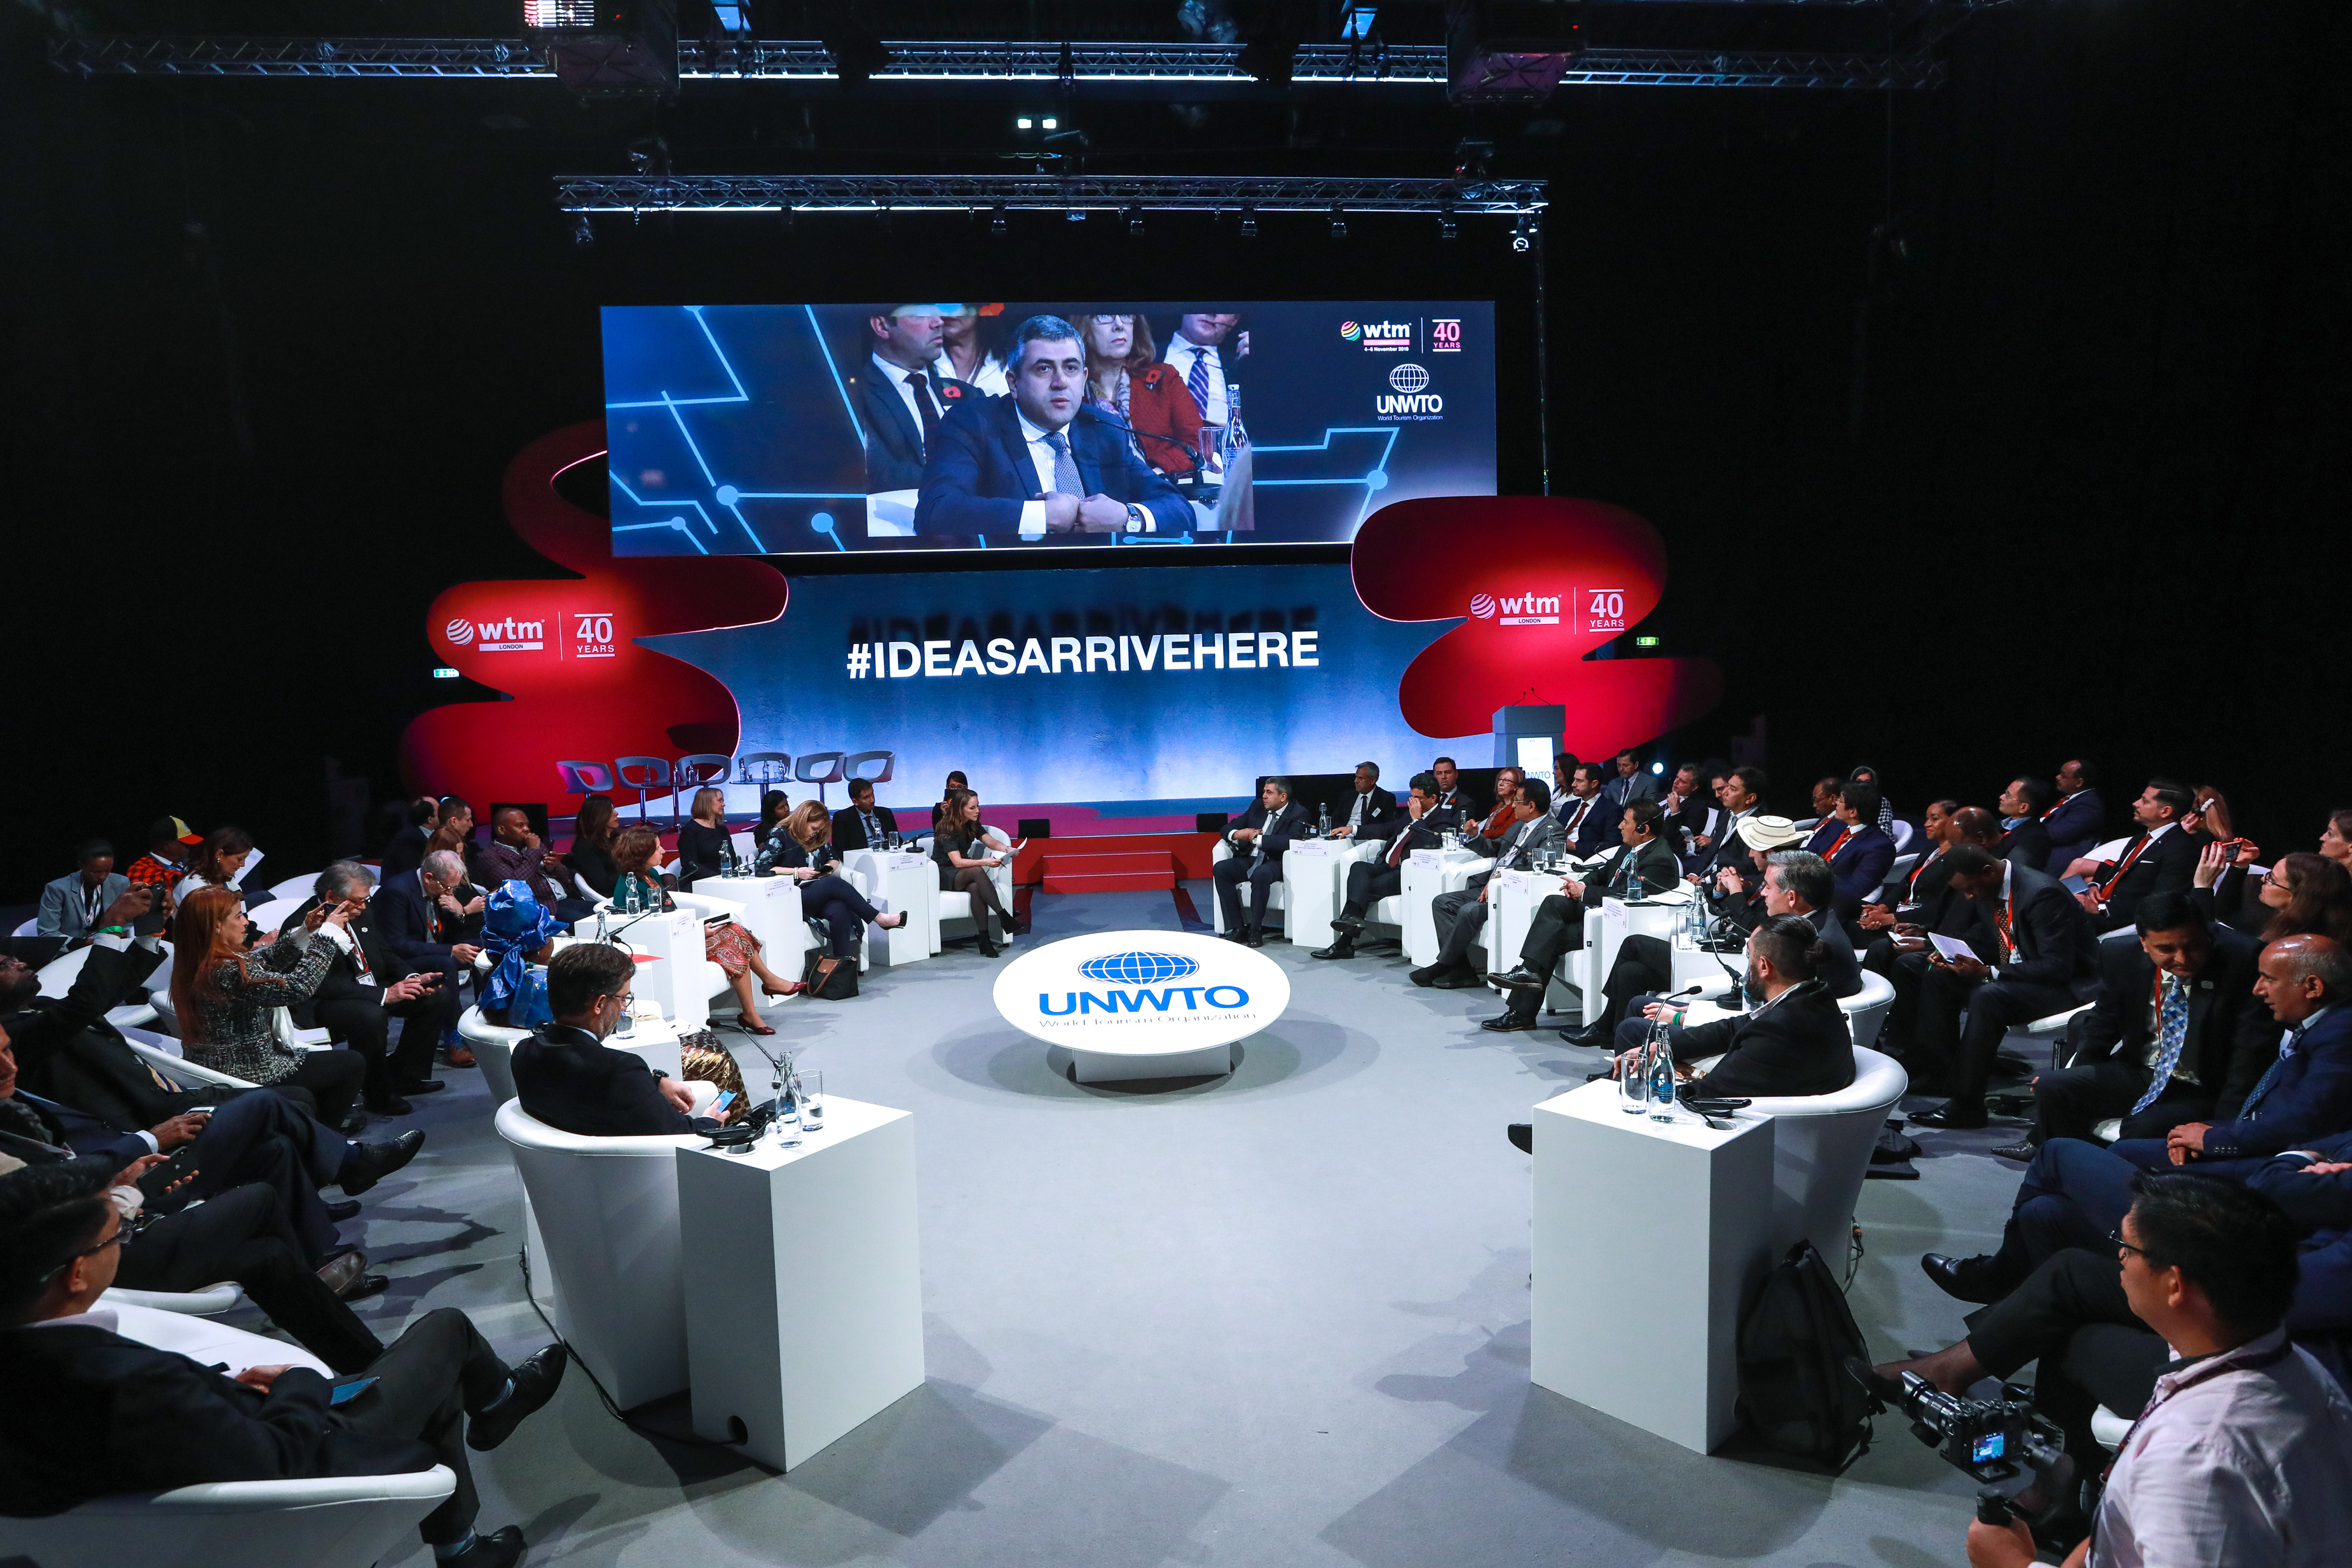 Innovation and Rural Development Takes Center Stage For Ministers' Summit at World Travel Market